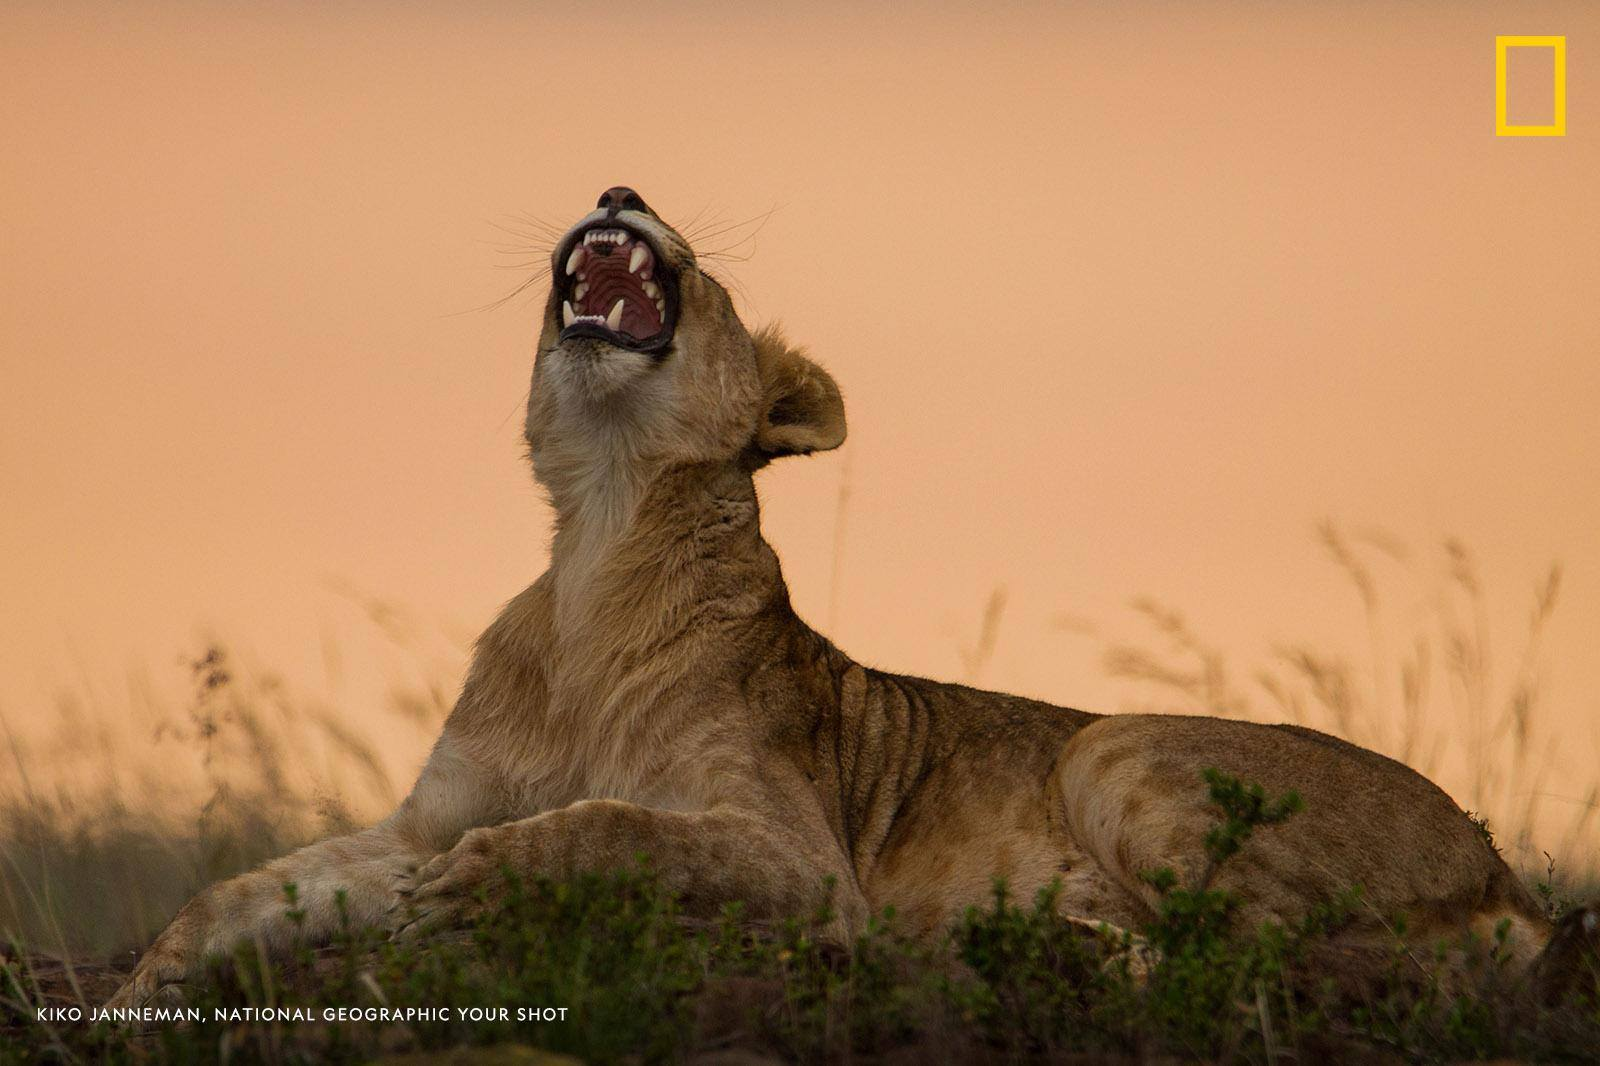 Help us caption this image by Your Shot photographer Kiko Janneman: https://on.natgeo.com/2YY4XQv